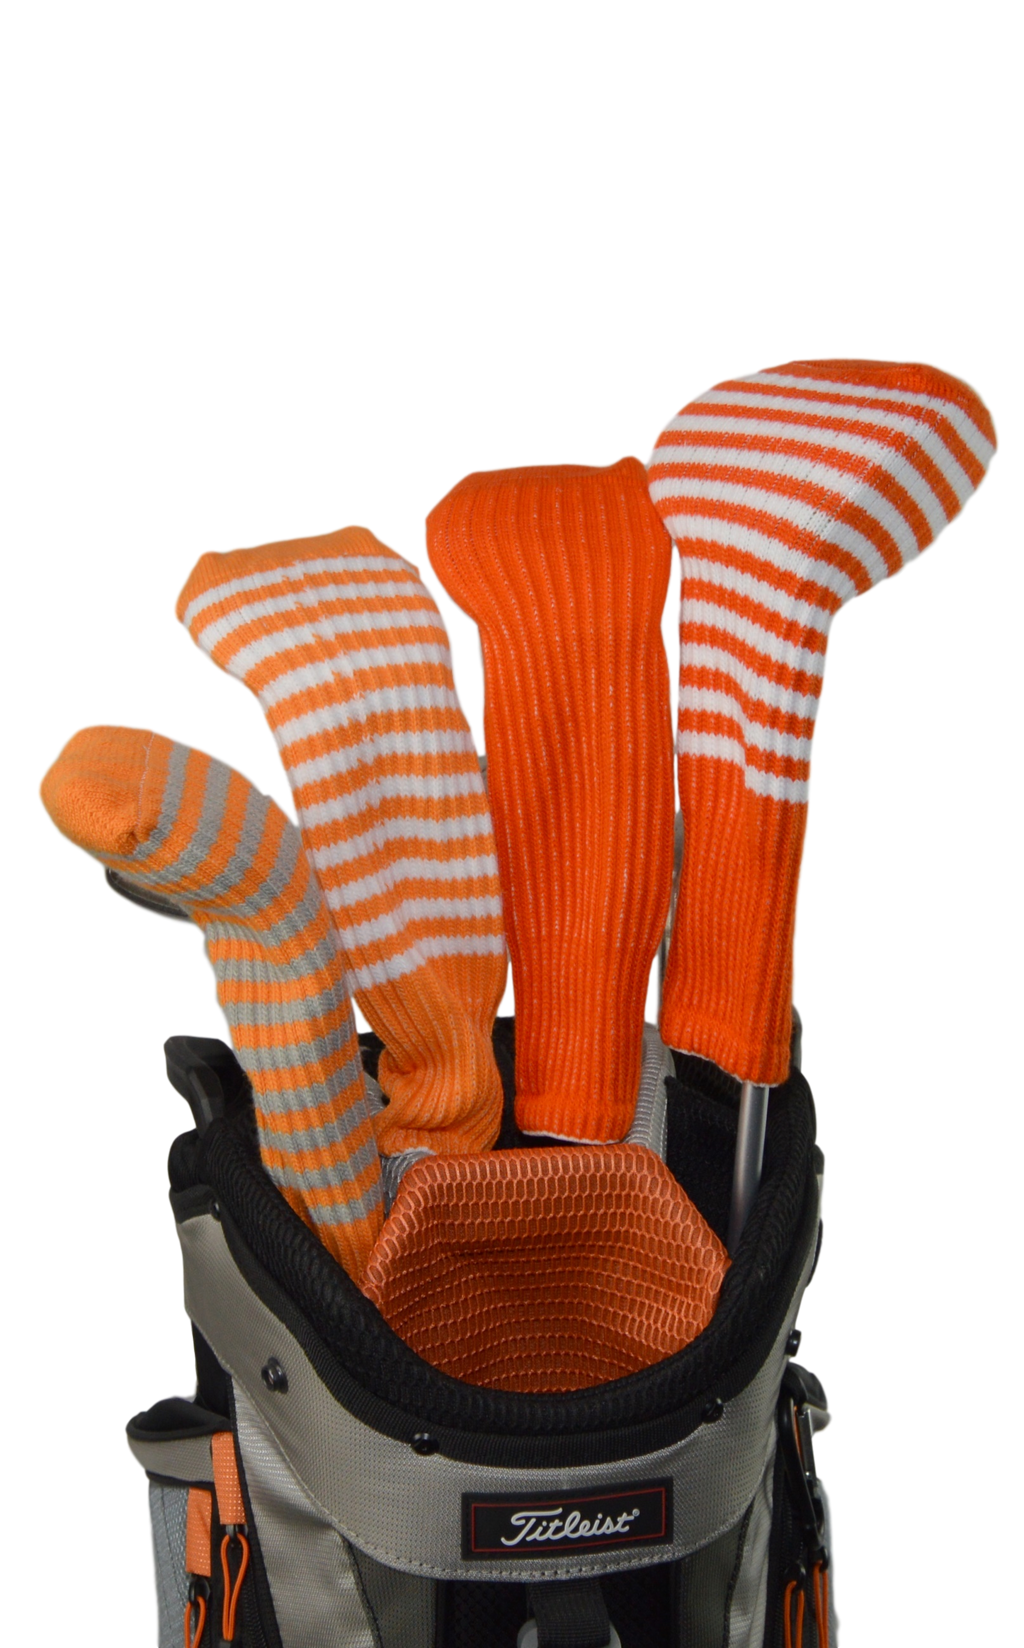 Light Orange and White Club Sock Golf Headcover